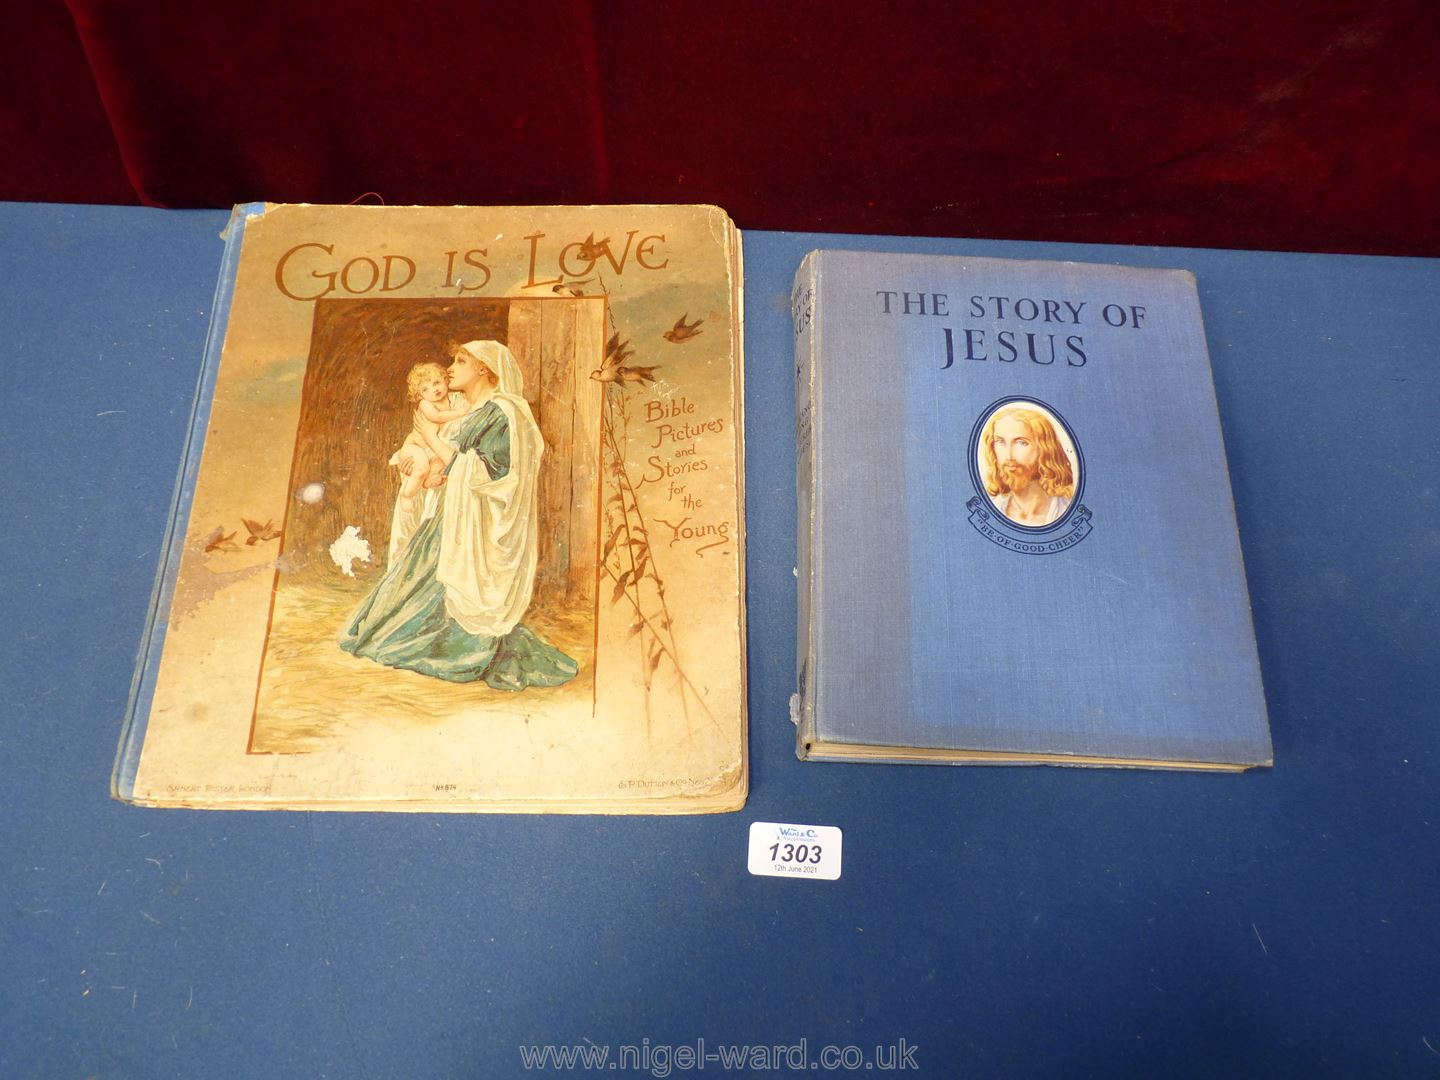 The Story of Jesus and God is Love pop up book.